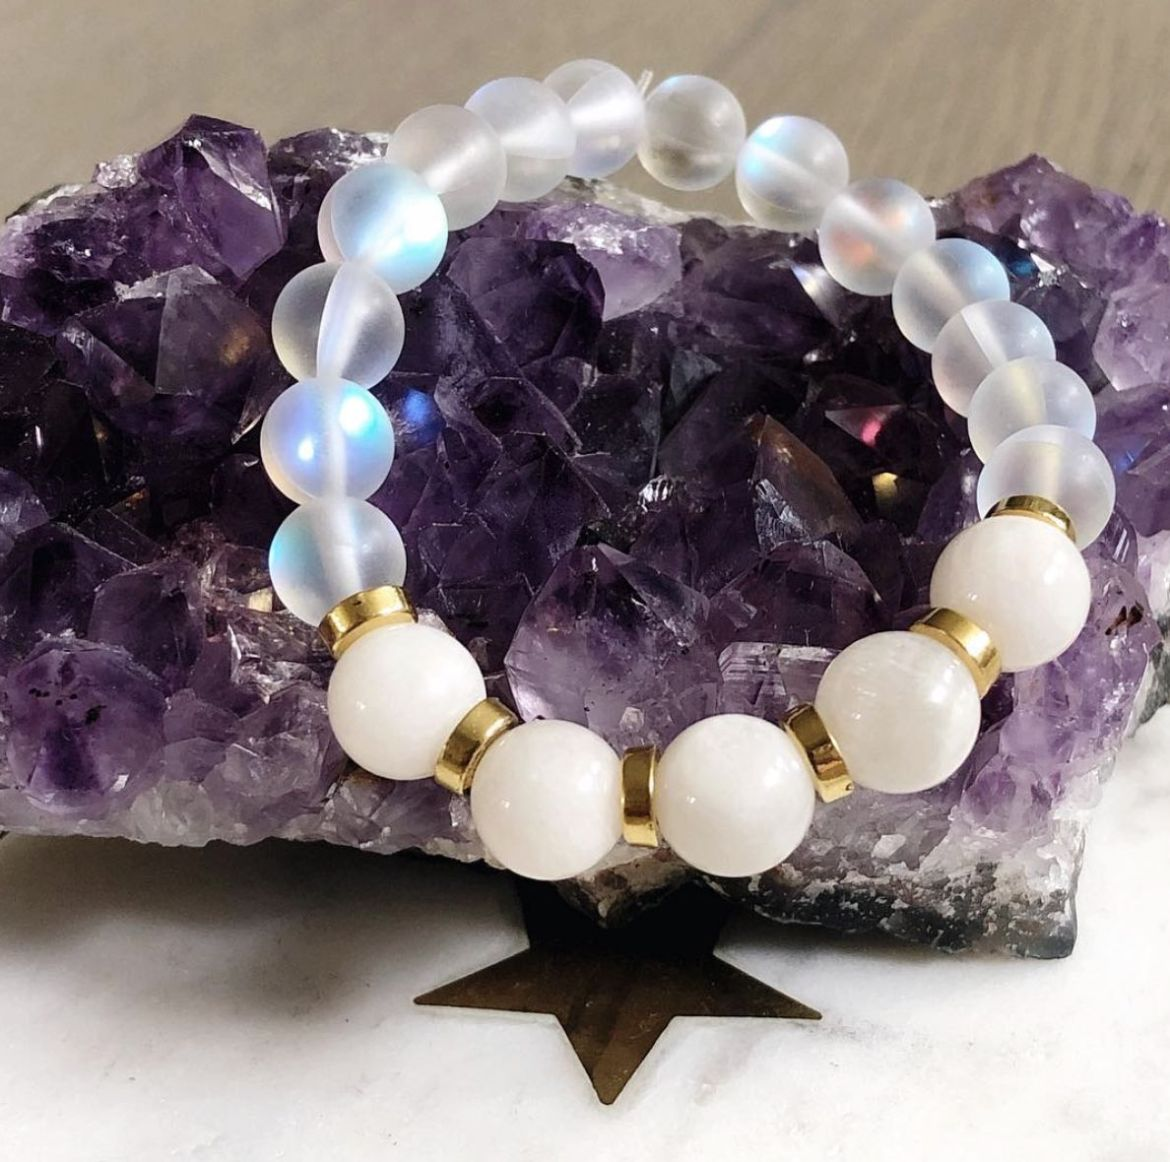 Empress Mala Designs, Moonstone and Aura Quartz Mala Bead Bracelet, Made In Canada